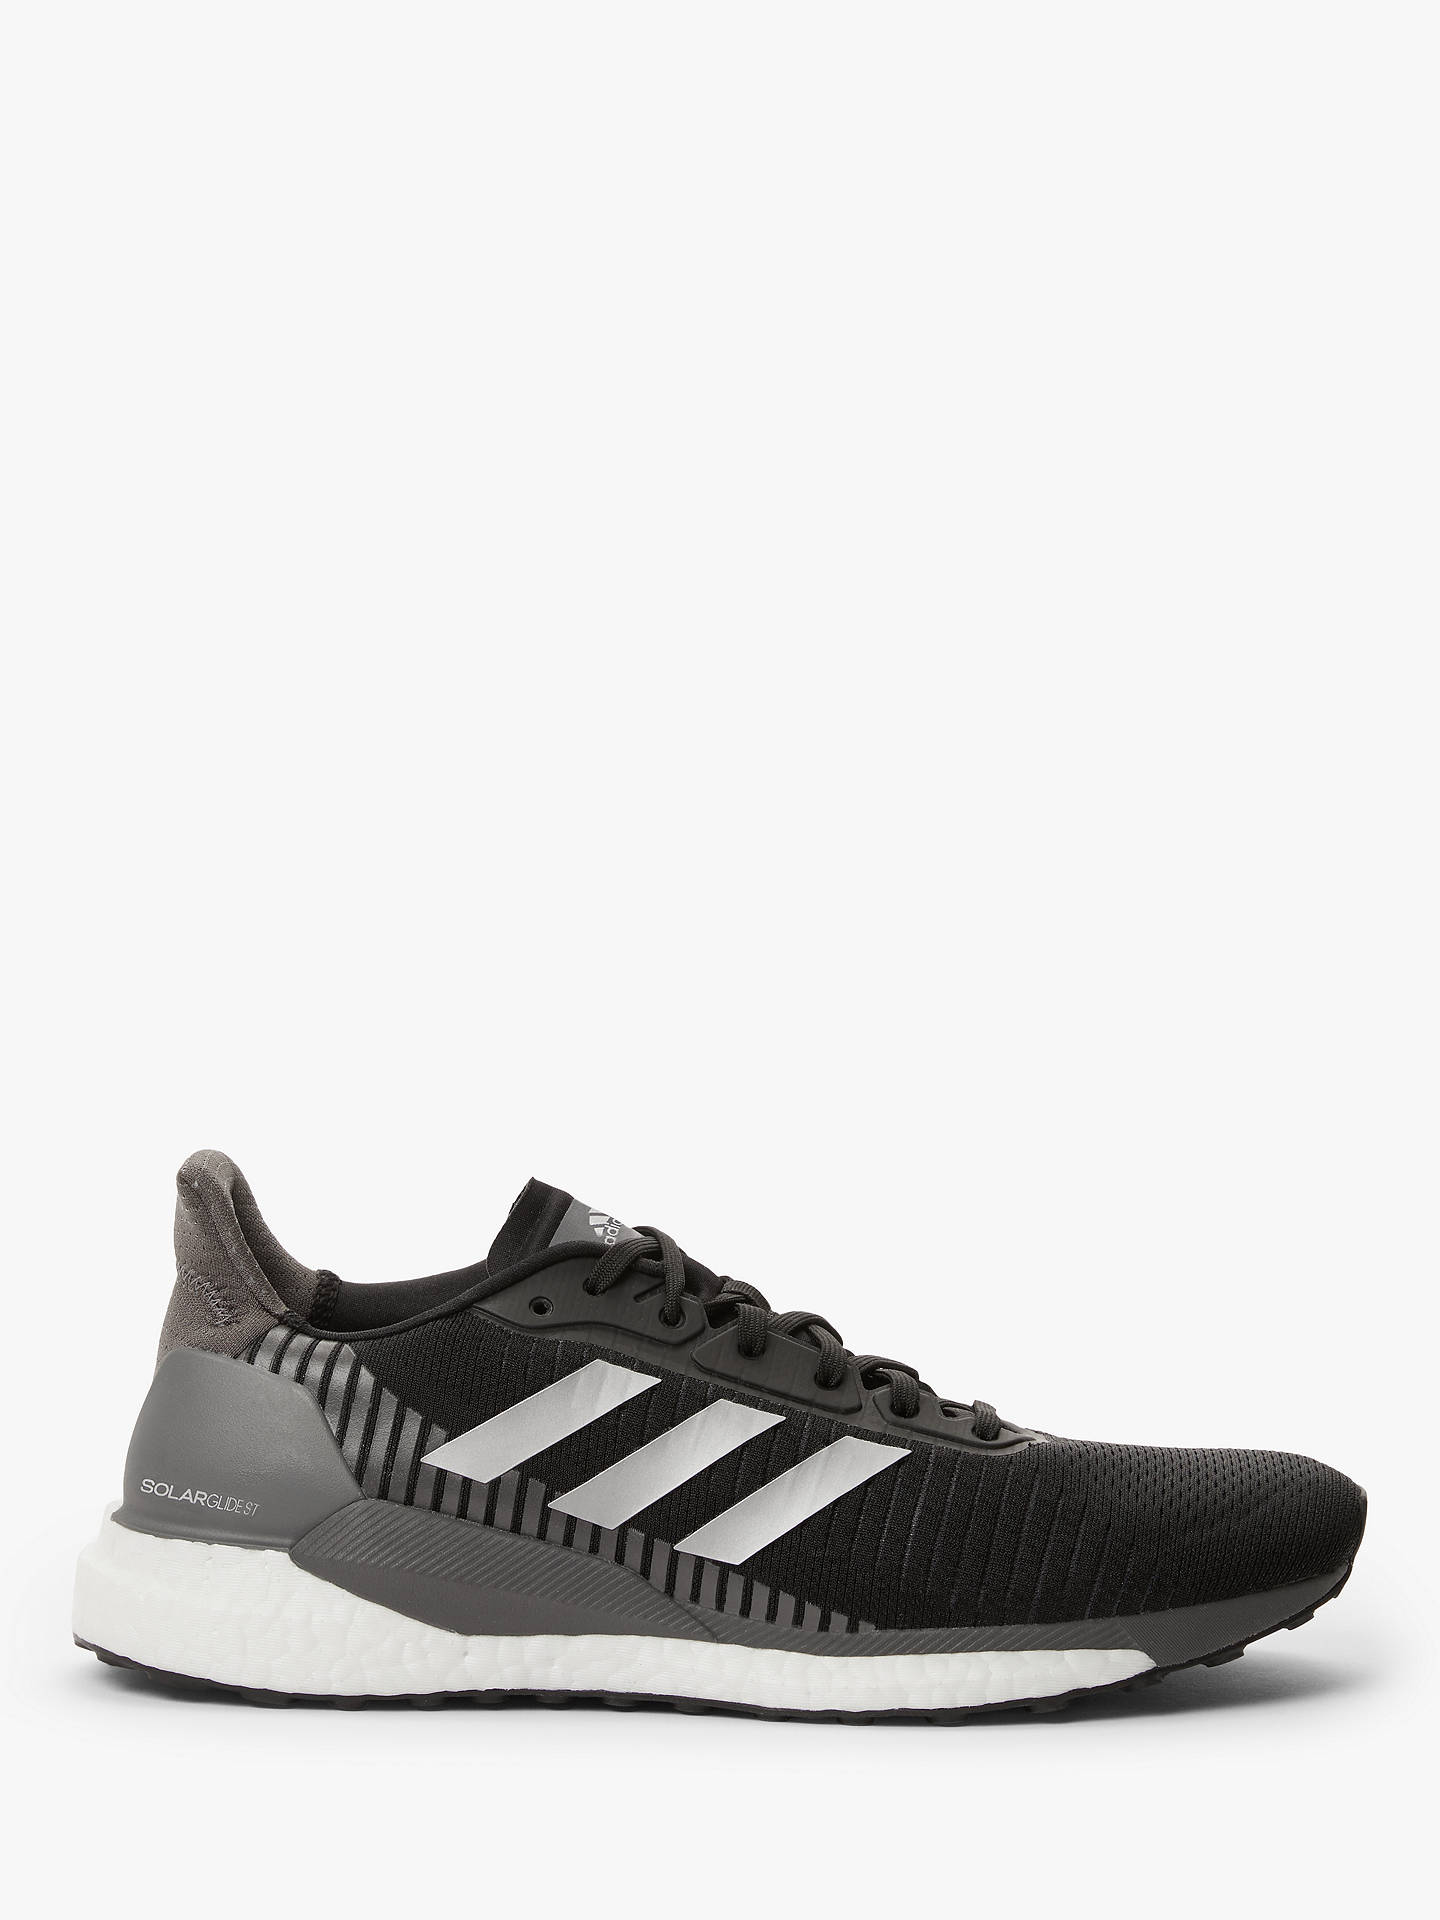 promo code 07918 083a0 adidas Solar Glide ST 19 Men's Running Shoes, Core Black/Silver Met./Grey  Five